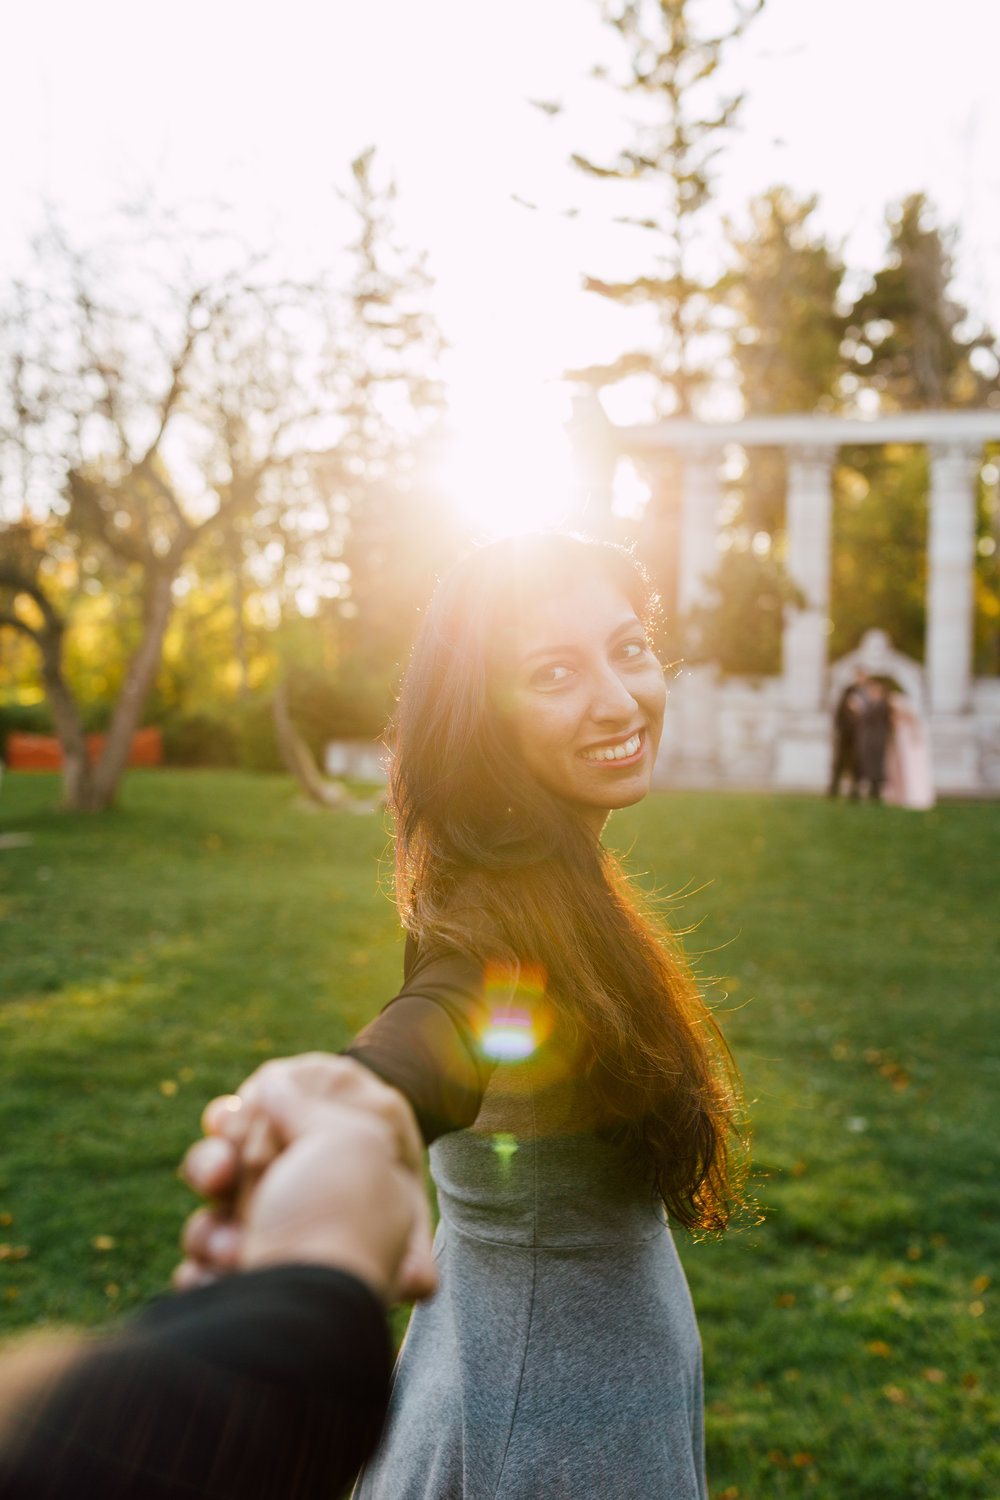 Engagementphotography_Preview_GuildPark_youthebest-5033.jpg